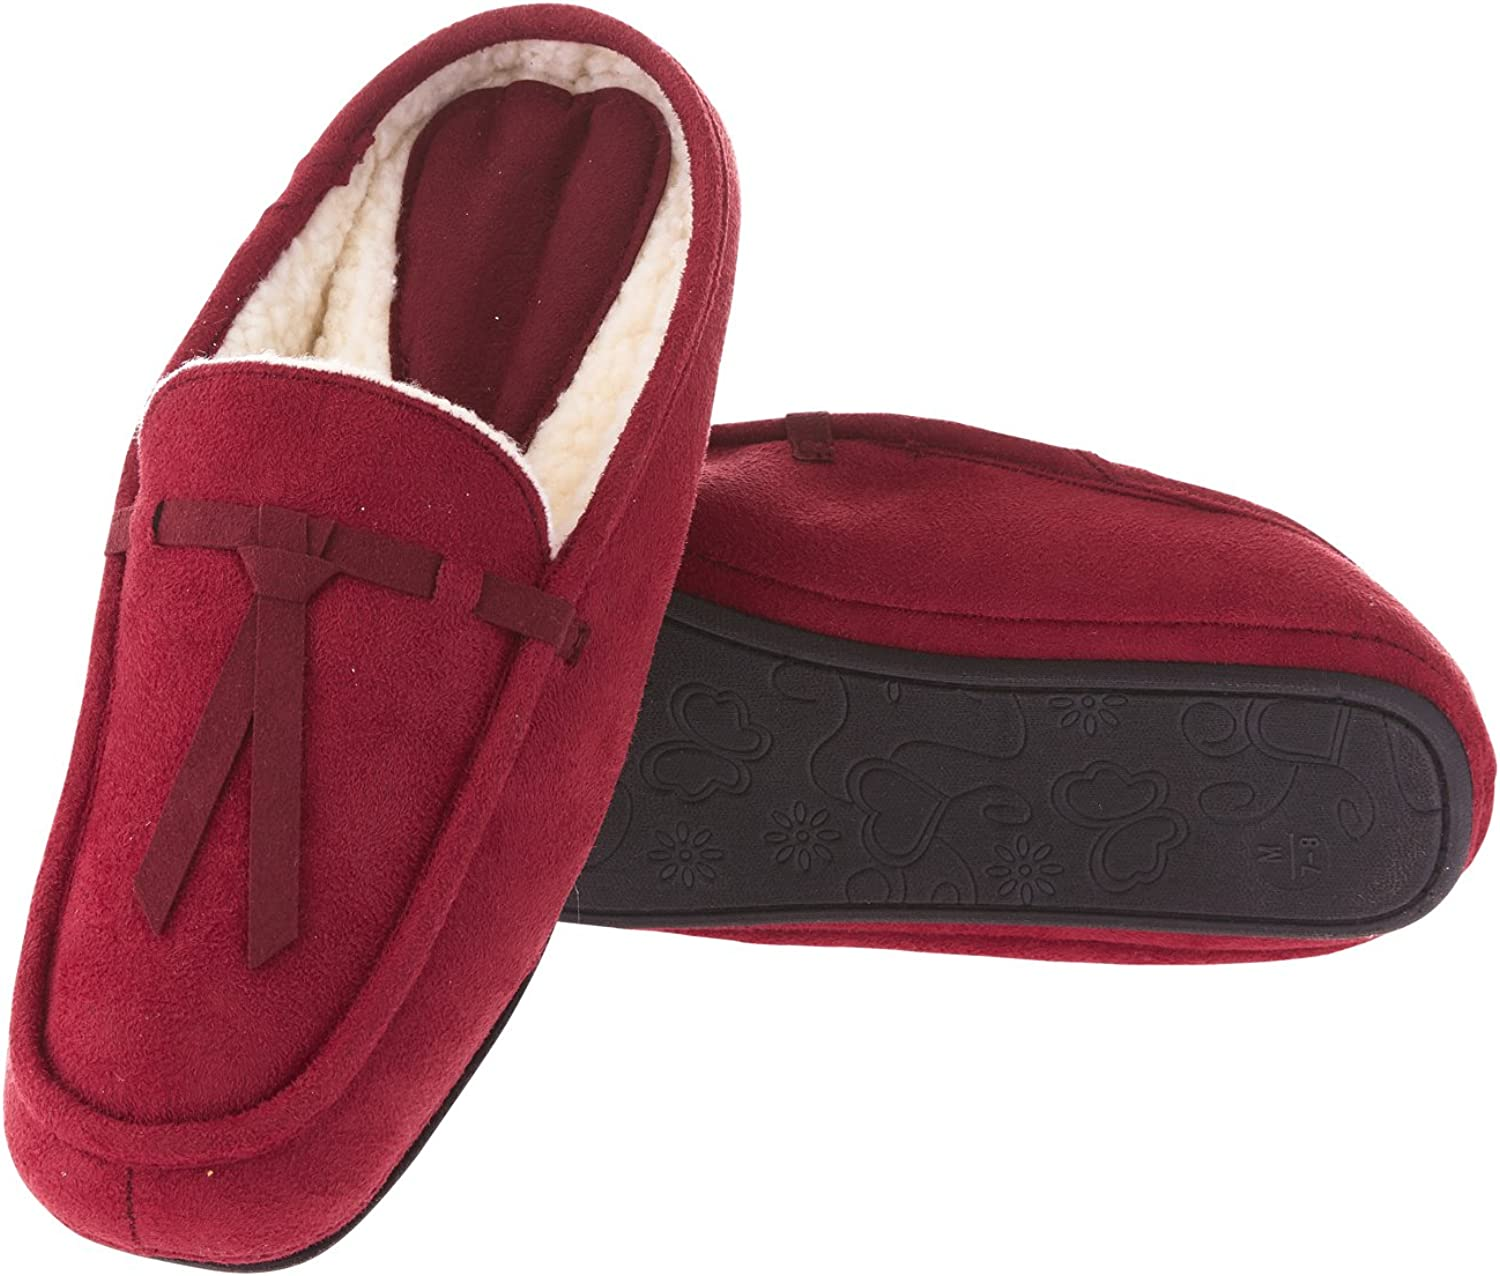 Seranoma Women's Moccasin Slippers  House Slippers,Soft and Comfortable,Faux Fur